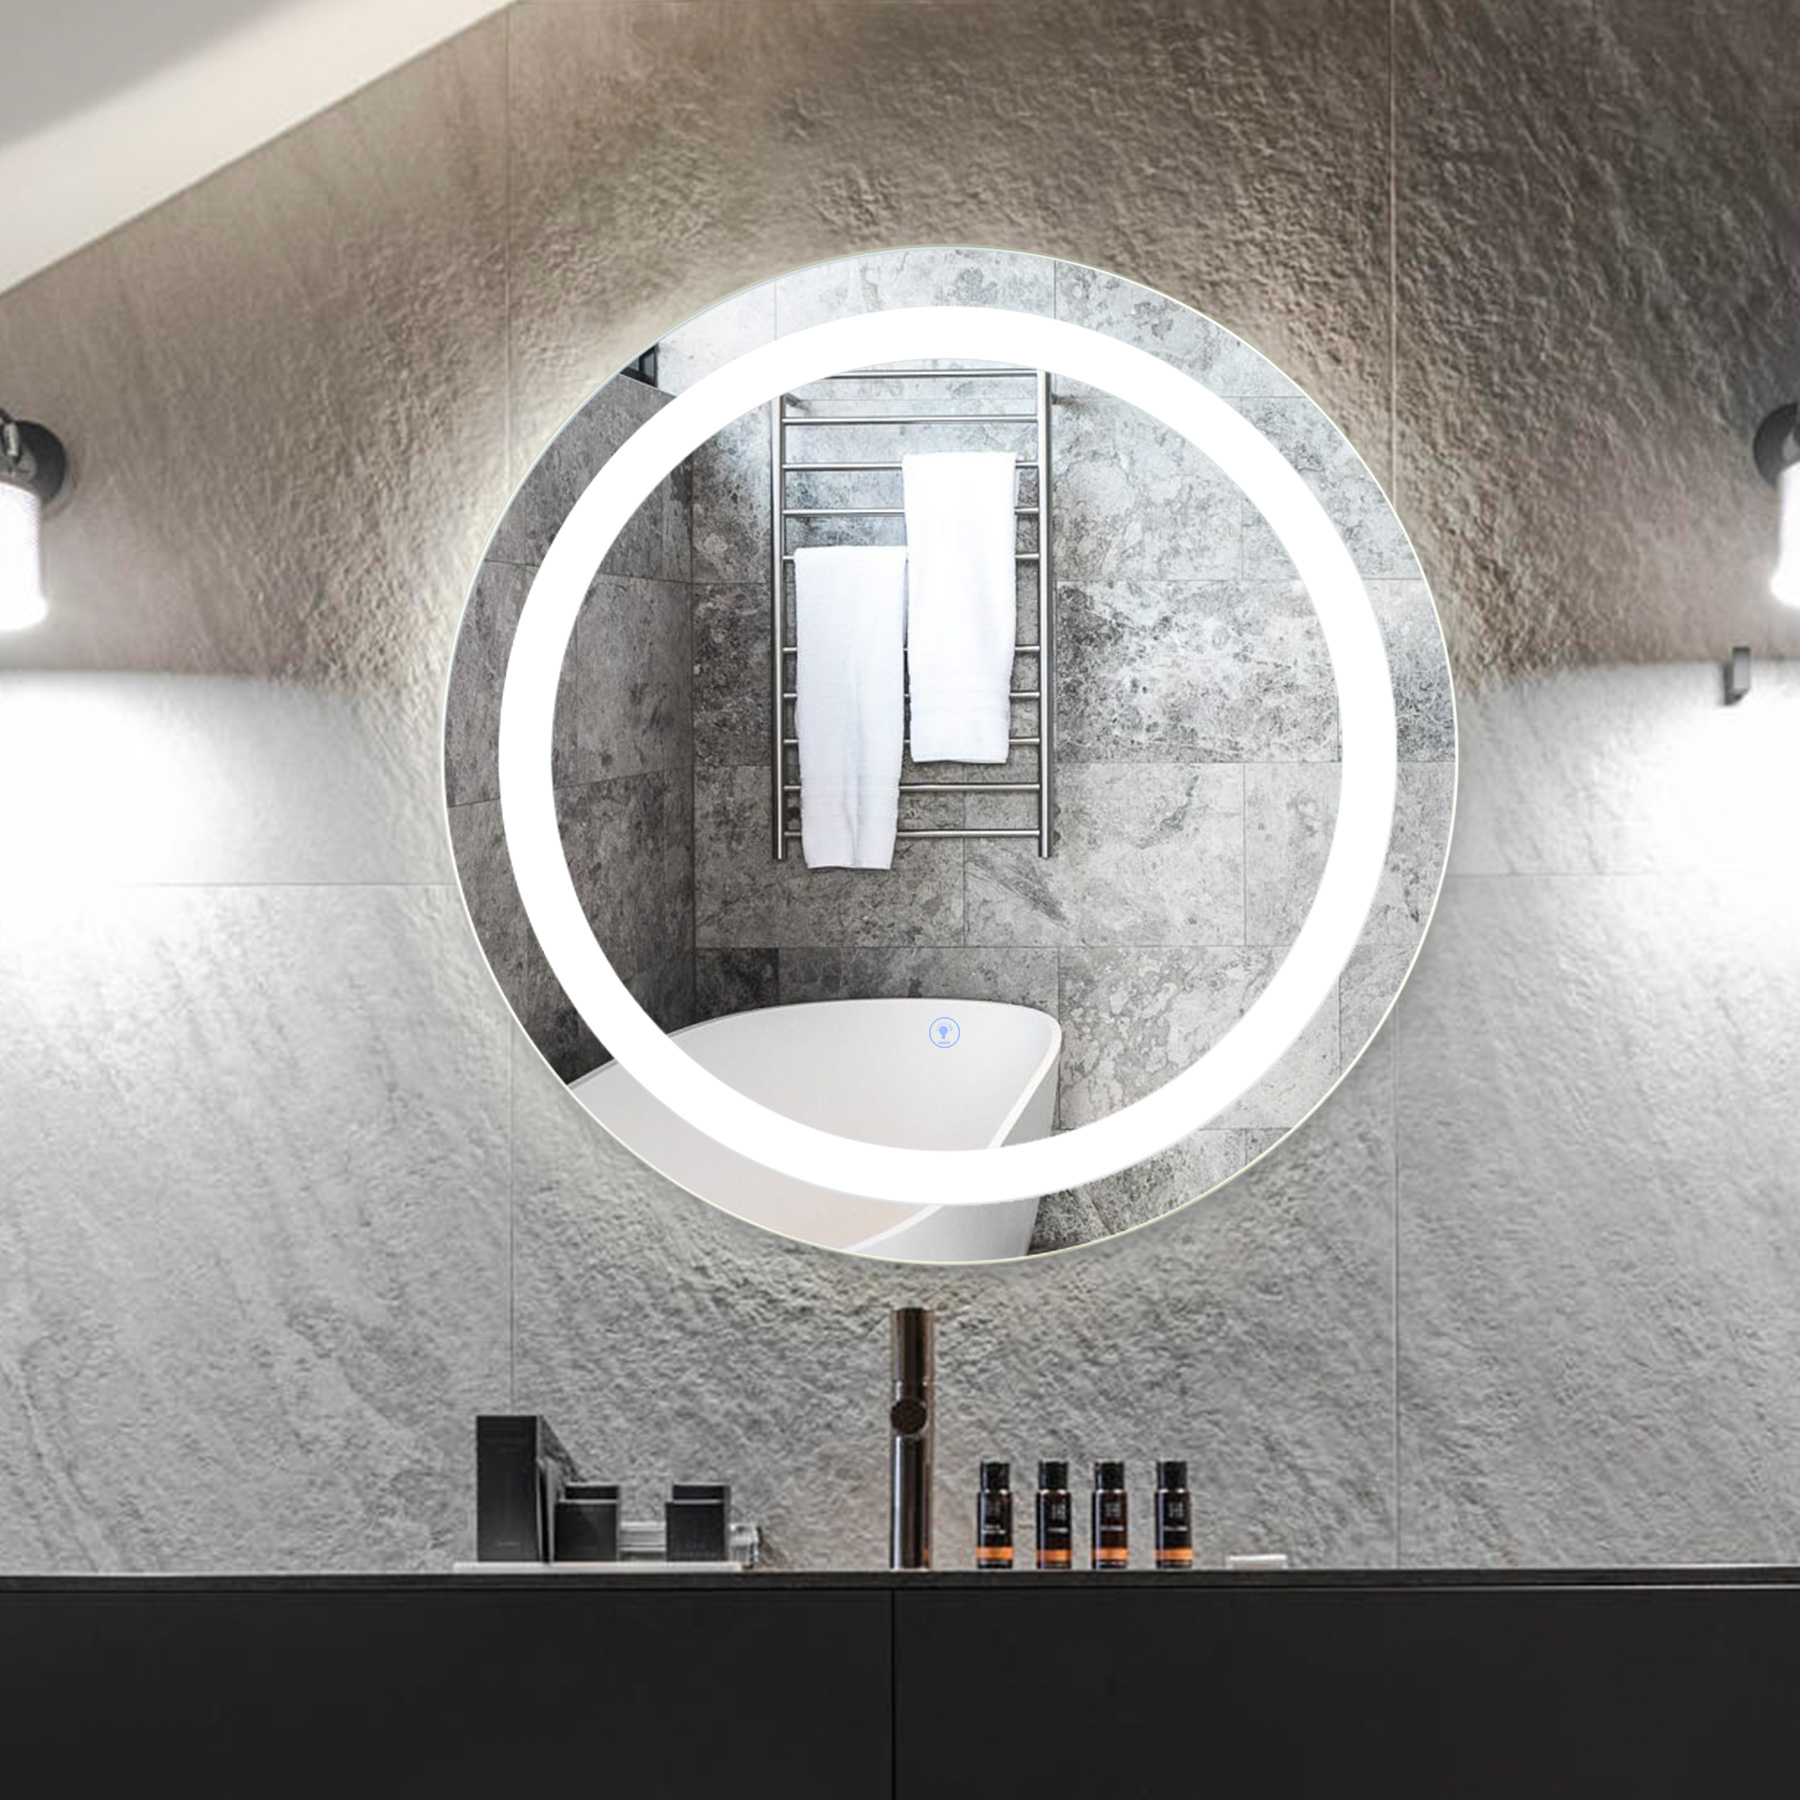 2 silver round wall mirror with built in smart led lighting touch control dimming glass aluminum alloy metal